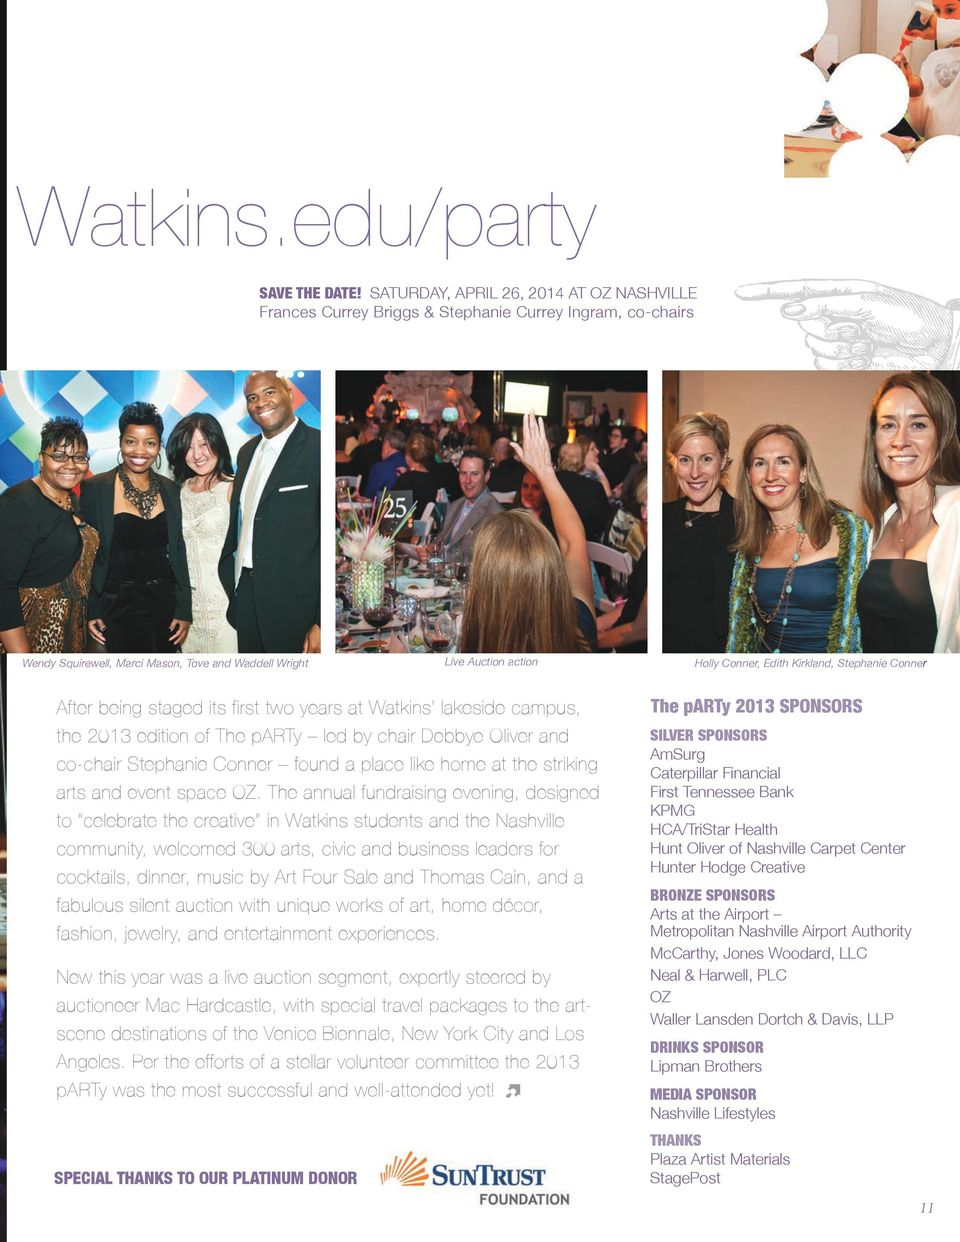 Kirkland, Stephanie Conner After being staged its first two years at Watkins lakeside campus, the 2013 edition of The party led by chair Debbye Oliver and co-chair Stephanie Conner found a place like